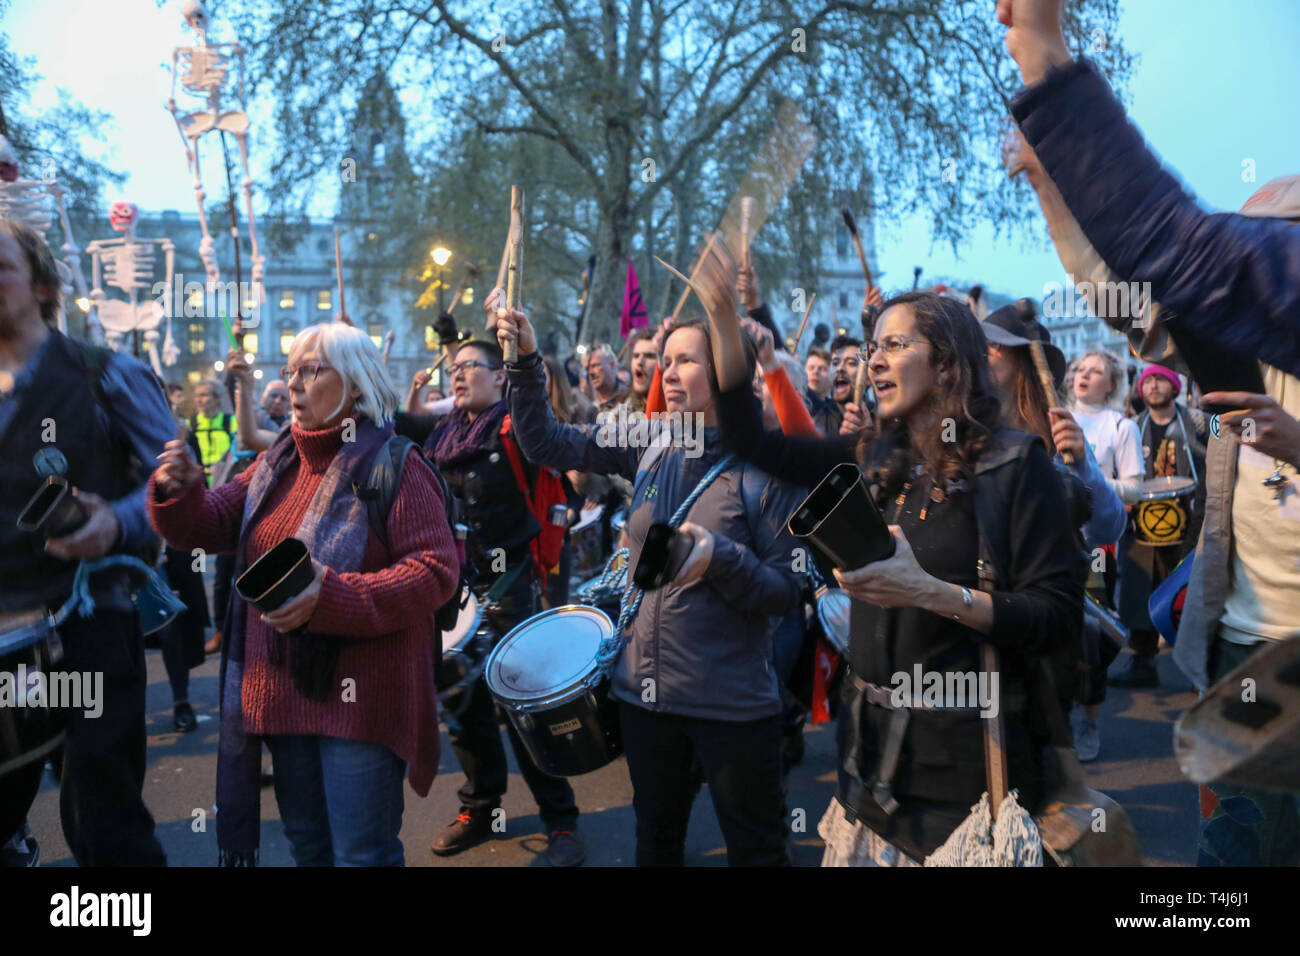 London, UK. 17th April, 2019. Parliament Square, London. Scenes at Parliament Square as environmental campaign group Extinction Rebellion close the square to through traffic. Credit: Penelope Barritt/Alamy Live News Stock Photo